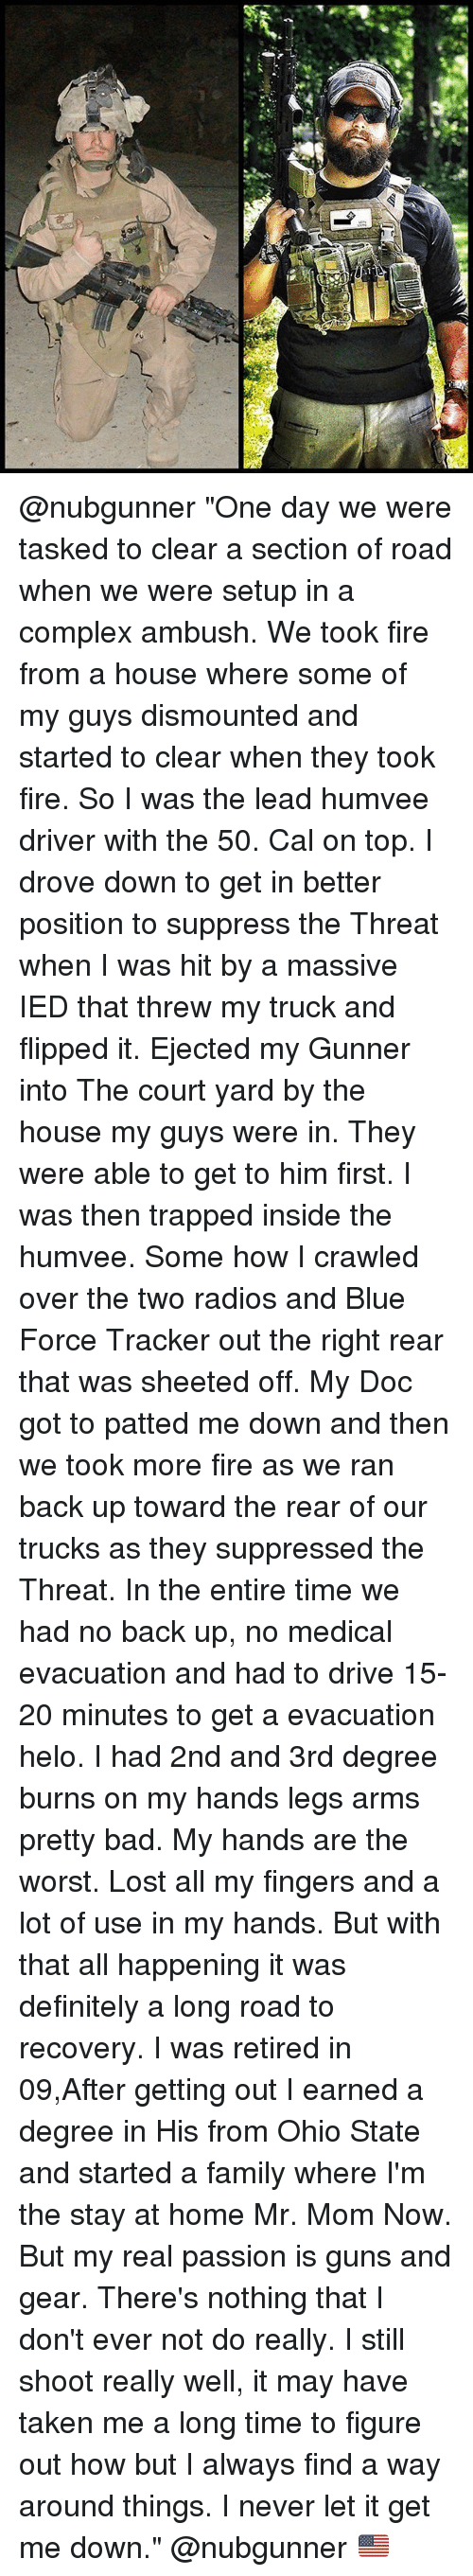 """Threws: @nubgunner """"One day we were tasked to clear a section of road when we were setup in a complex ambush. We took fire from a house where some of my guys dismounted and started to clear when they took fire. So I was the lead humvee driver with the 50. Cal on top. I drove down to get in better position to suppress the Threat when I was hit by a massive IED that threw my truck and flipped it. Ejected my Gunner into The court yard by the house my guys were in. They were able to get to him first. I was then trapped inside the humvee. Some how I crawled over the two radios and Blue Force Tracker out the right rear that was sheeted off. My Doc got to patted me down and then we took more fire as we ran back up toward the rear of our trucks as they suppressed the Threat. In the entire time we had no back up, no medical evacuation and had to drive 15-20 minutes to get a evacuation helo. I had 2nd and 3rd degree burns on my hands legs arms pretty bad. My hands are the worst. Lost all my fingers and a lot of use in my hands. But with that all happening it was definitely a long road to recovery. I was retired in 09,After getting out I earned a degree in His from Ohio State and started a family where I'm the stay at home Mr. Mom Now. But my real passion is guns and gear. There's nothing that I don't ever not do really. I still shoot really well, it may have taken me a long time to figure out how but I always find a way around things. I never let it get me down."""" @nubgunner 🇺🇸"""